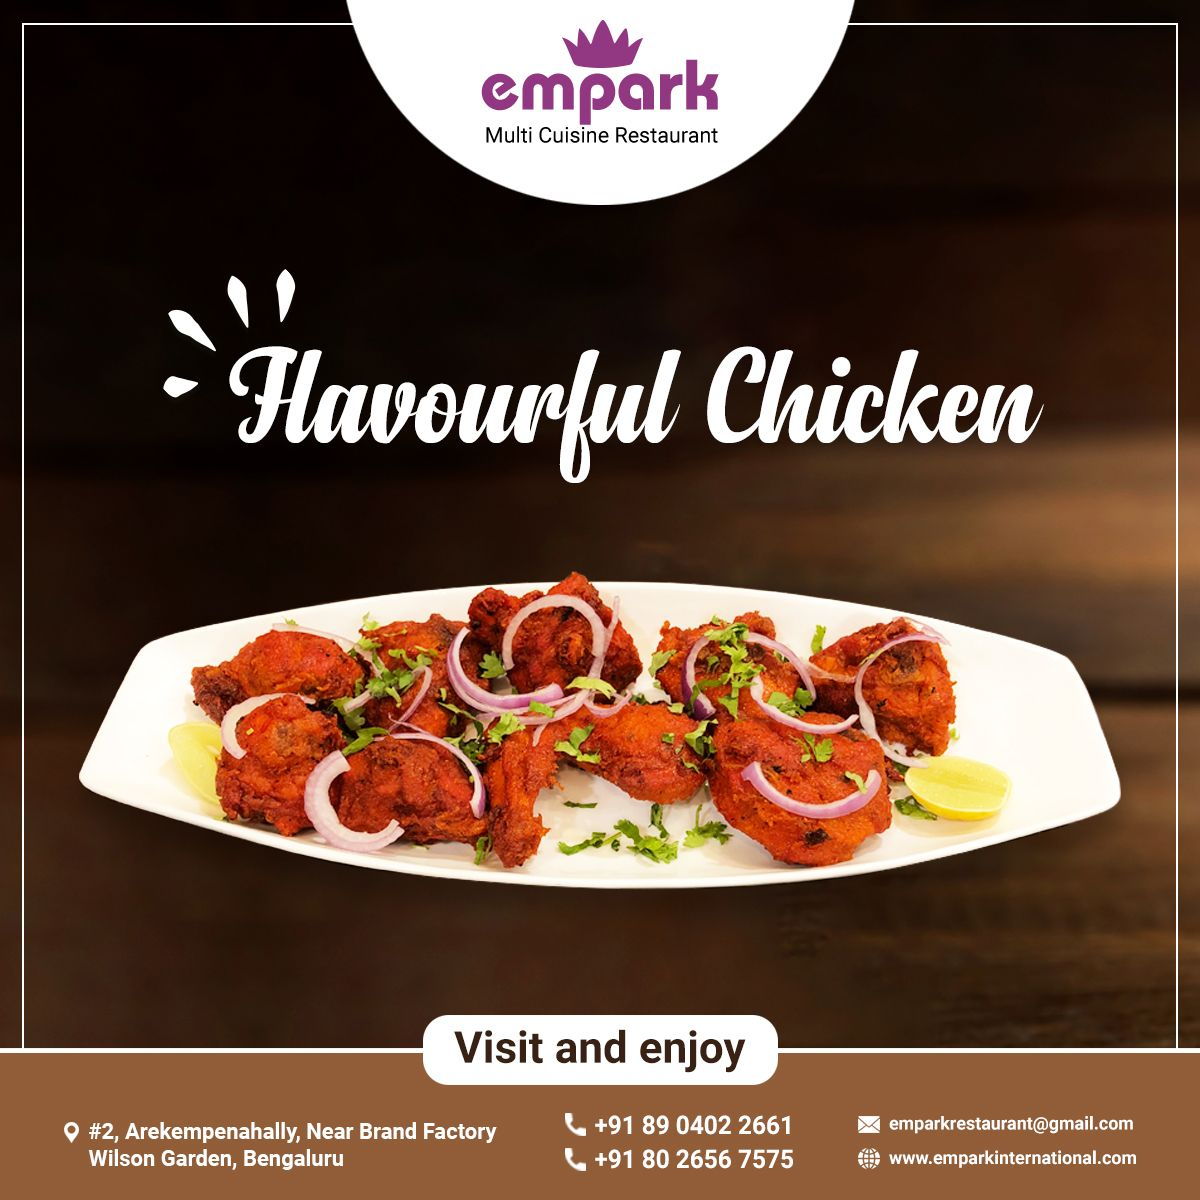 To Make Your Stay More Delightful We Offer The Delicious Cuisines At Hotel Empark Enjoy Good Food With Good Stay A In 2020 With Images Cooking Recipes Food Food Quality